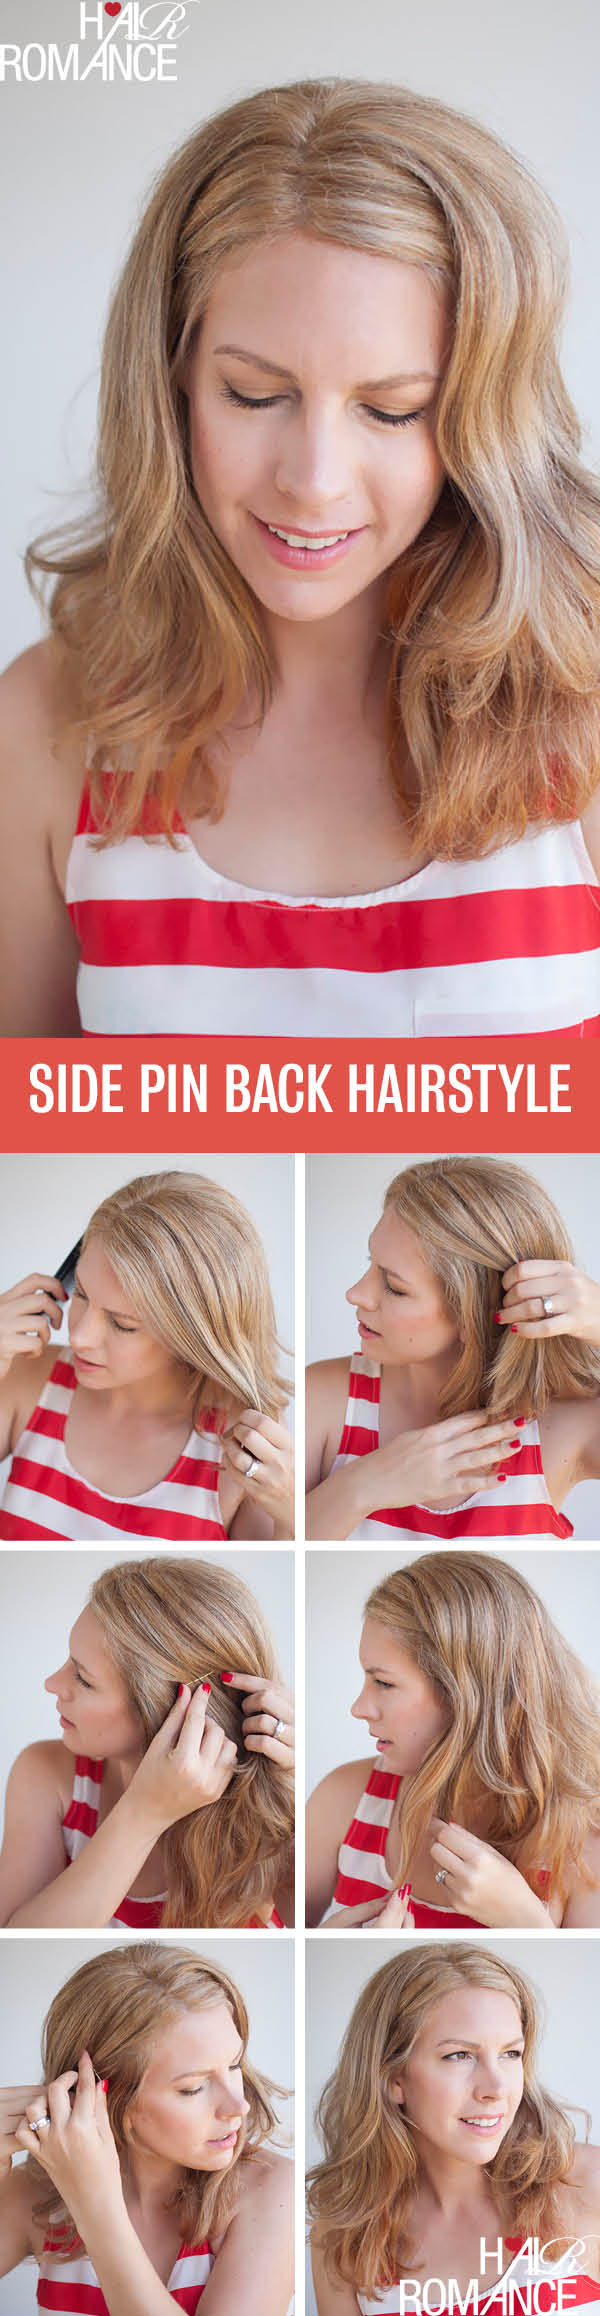 Hair Romance - Side pinned back hairstyle tutorial